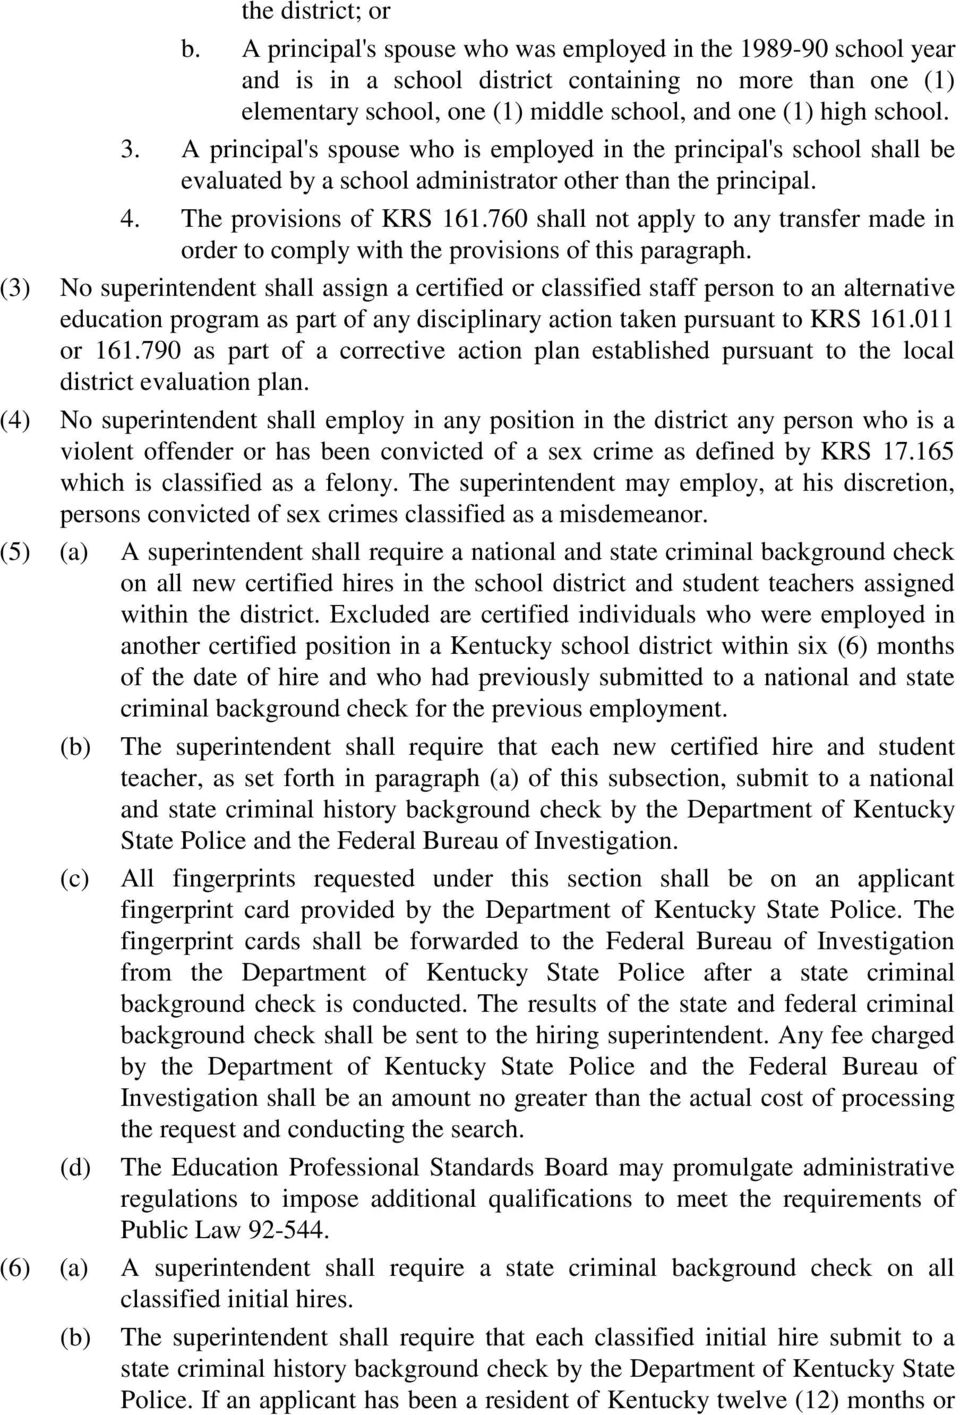 A principal's spouse who is employed in the principal's school shall be evaluated by a school administrator other than the principal. 4. The provisions of KRS 161.